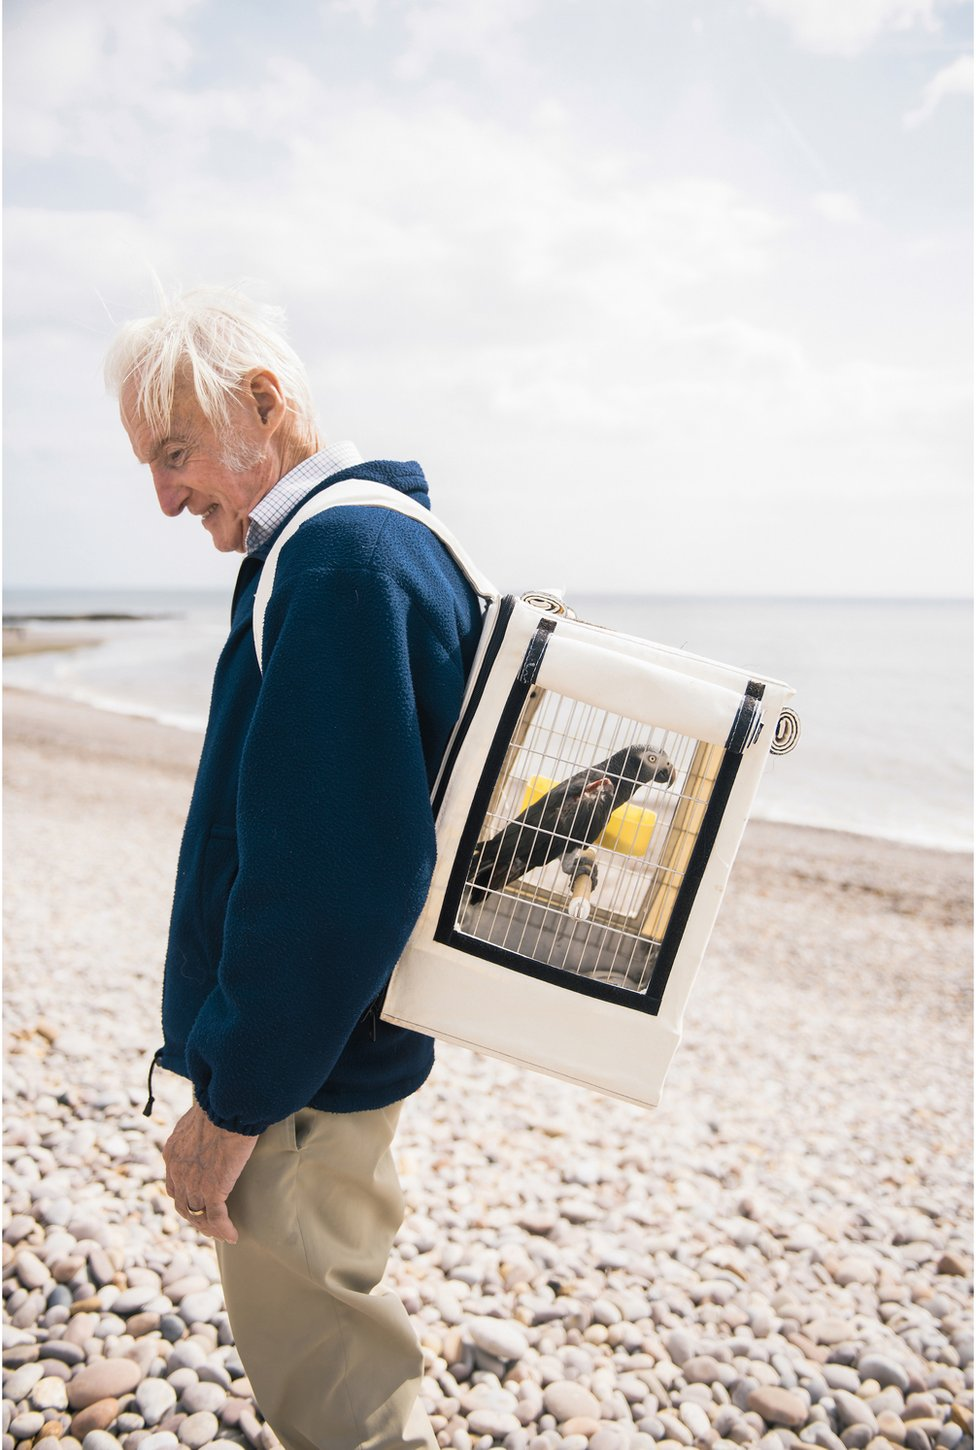 Portrait of Roy on the beach with an Africa grey parrot in a cage on his back